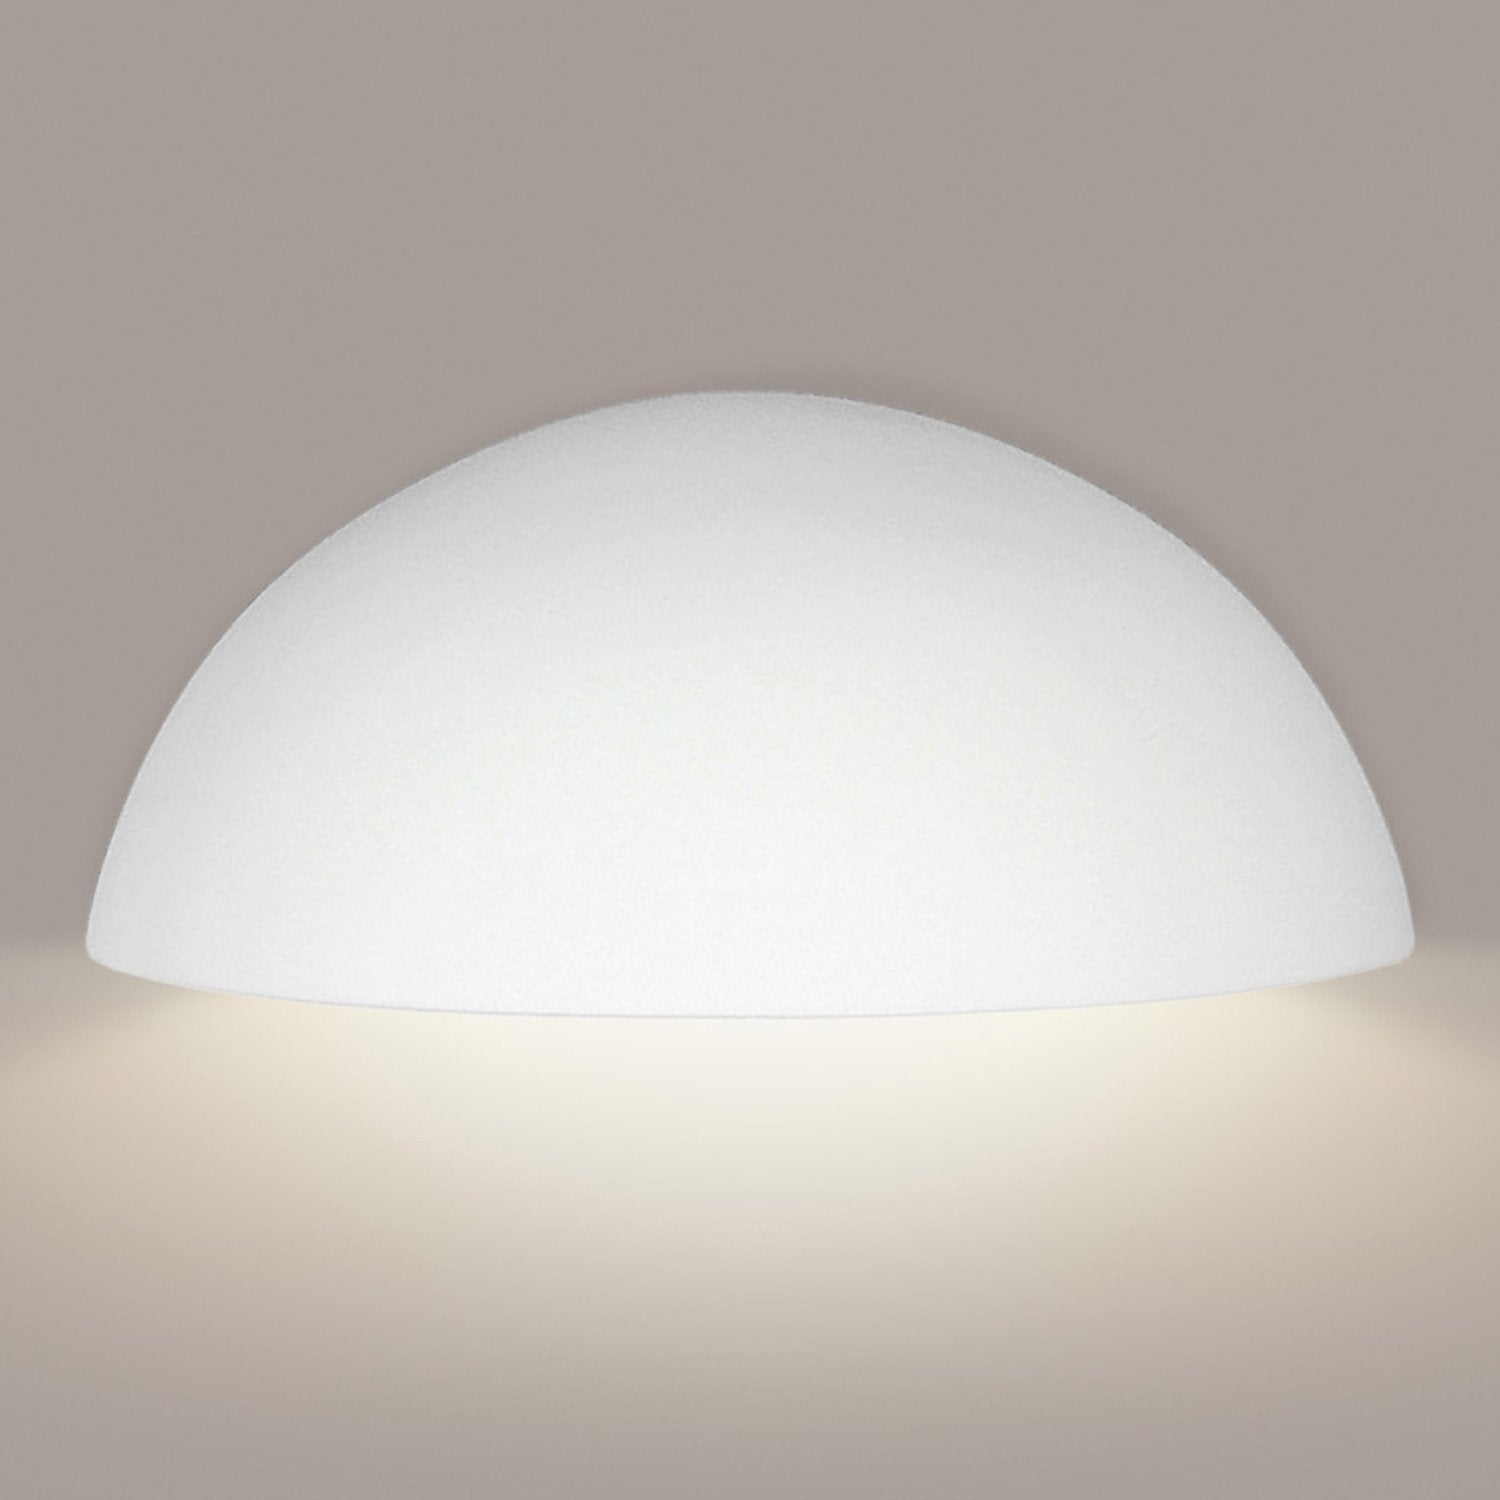 A19 309D-GU24-A2 Islands of Light Collection Thera Straw Finish Wall Sconce